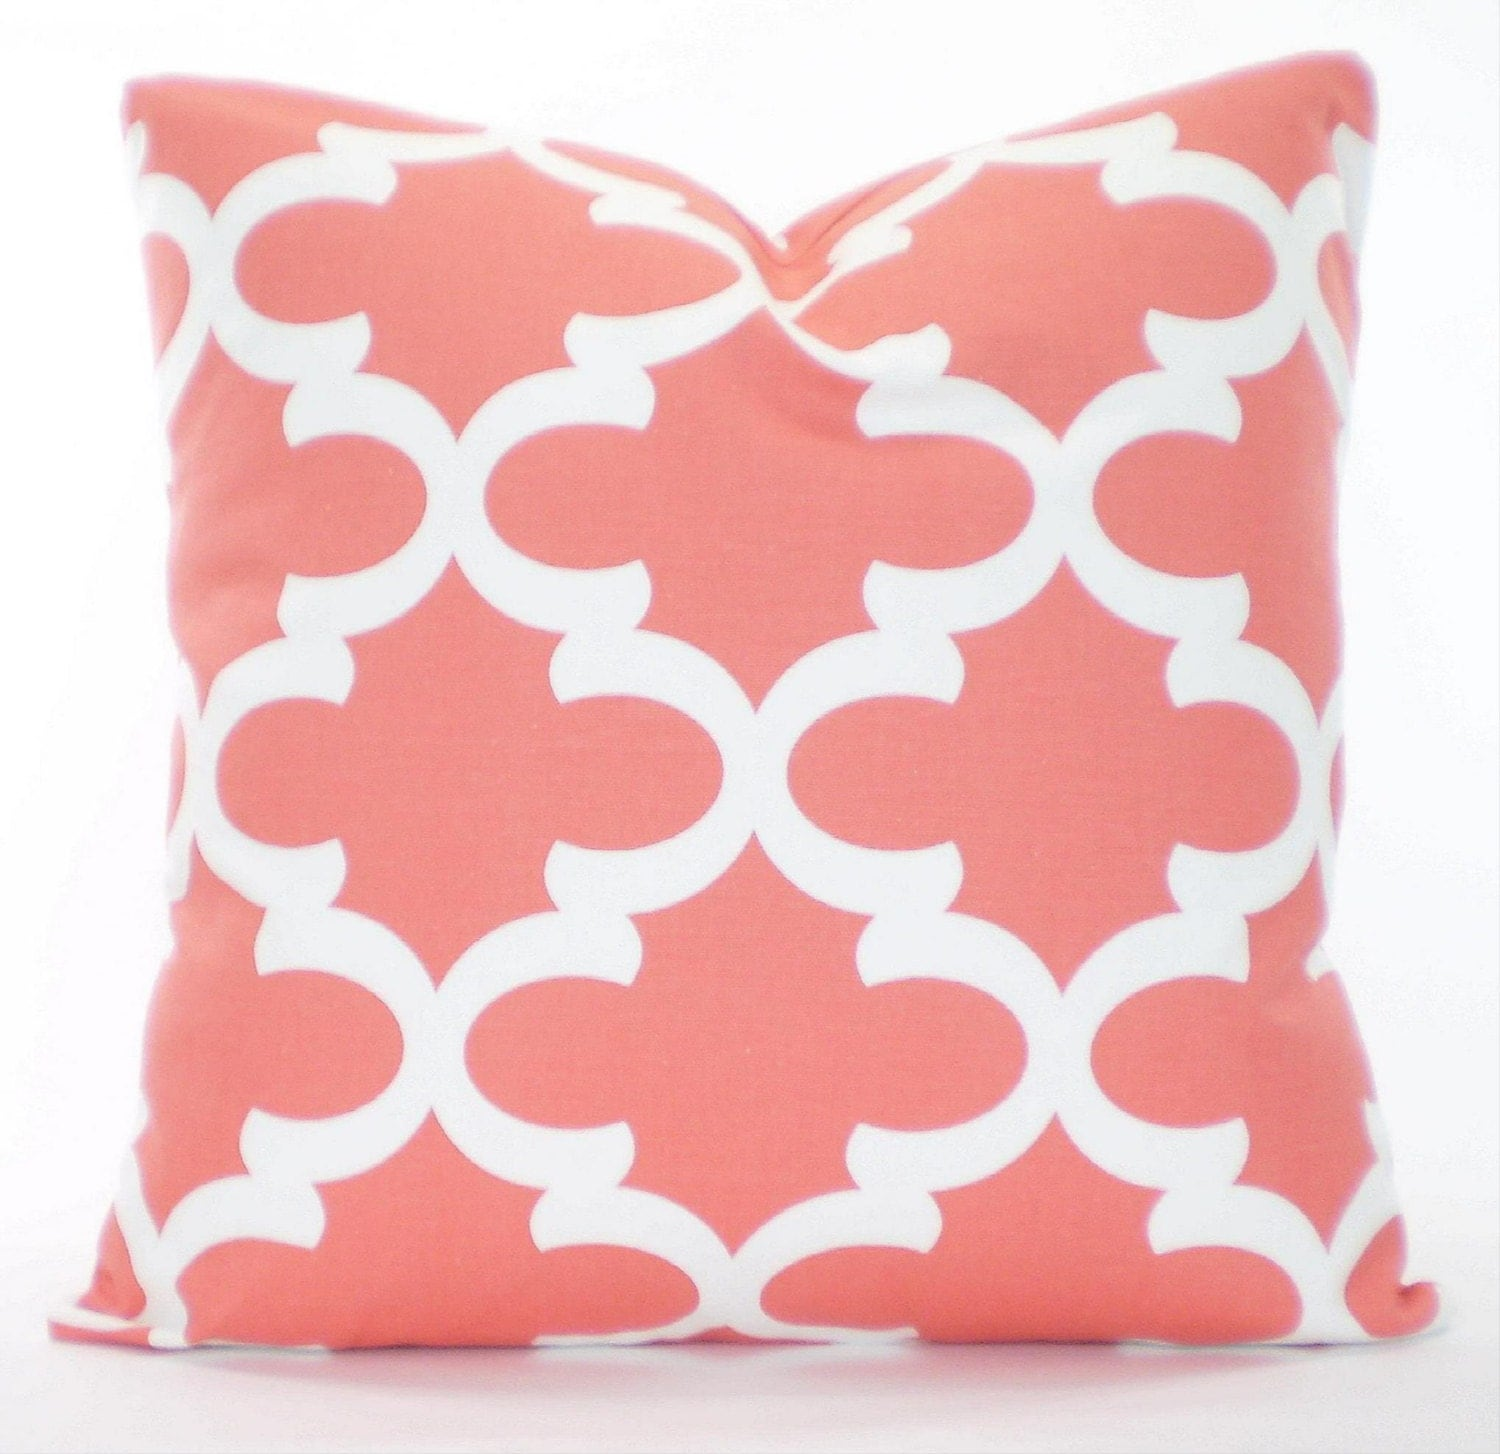 Throw Pillow Etsy : Coral Throw Pillow Covers Cushion Cover by PillowCushionCovers